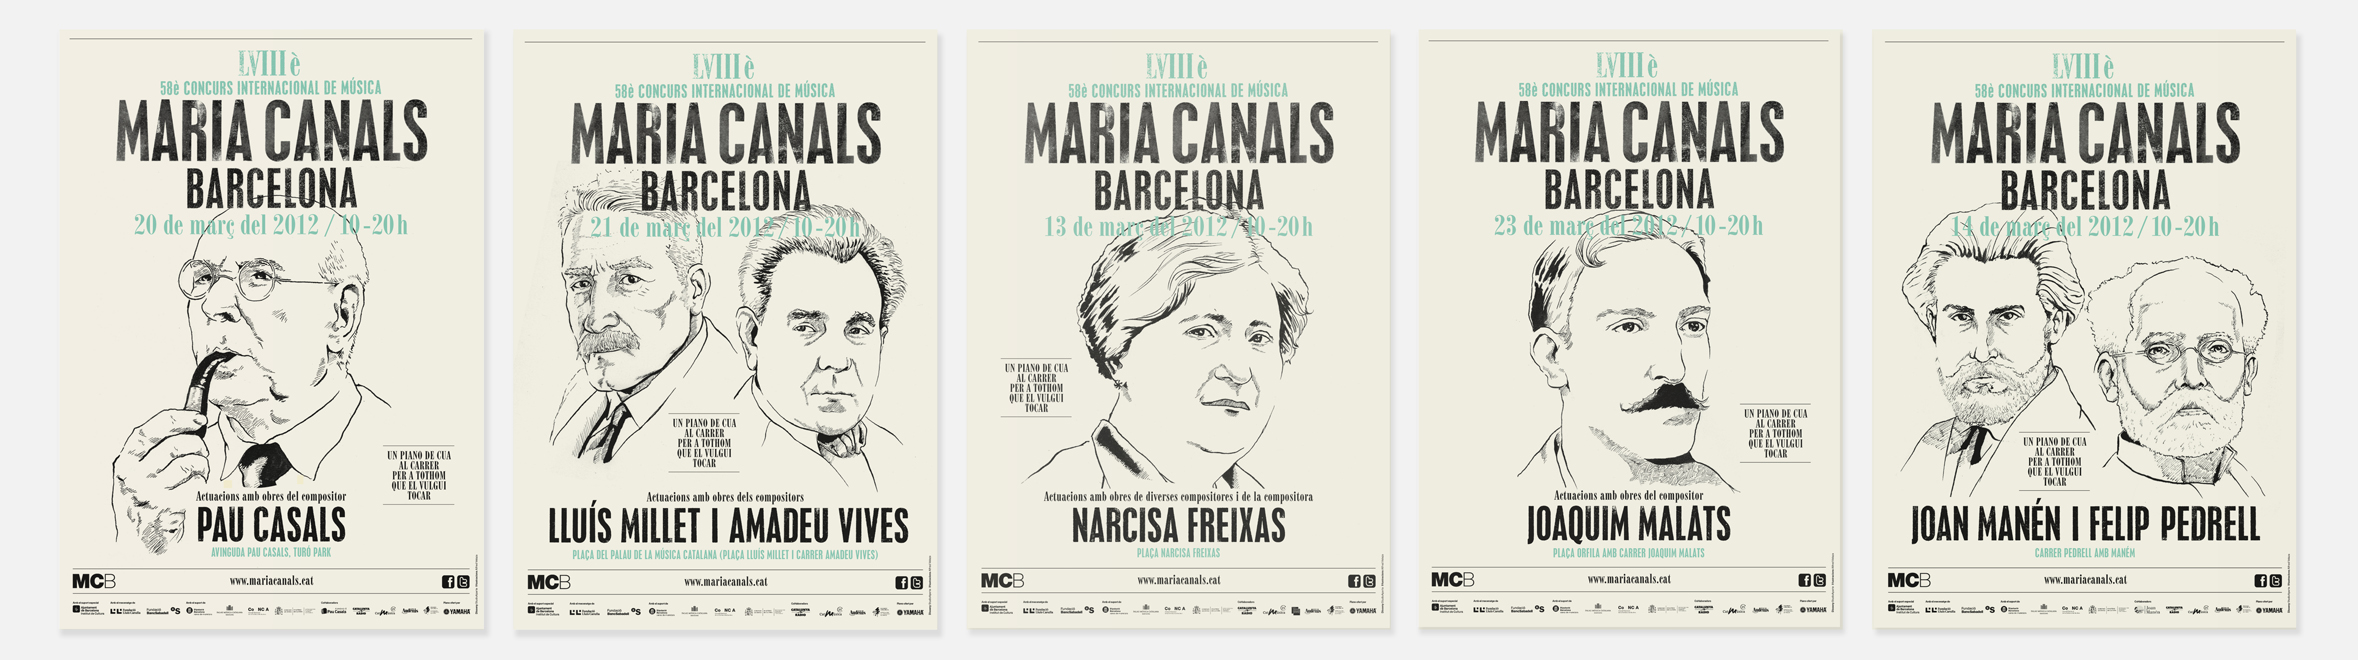 Posters for special concerts given in the streets named after catalan composers // Illustrations © Alfred Velaza